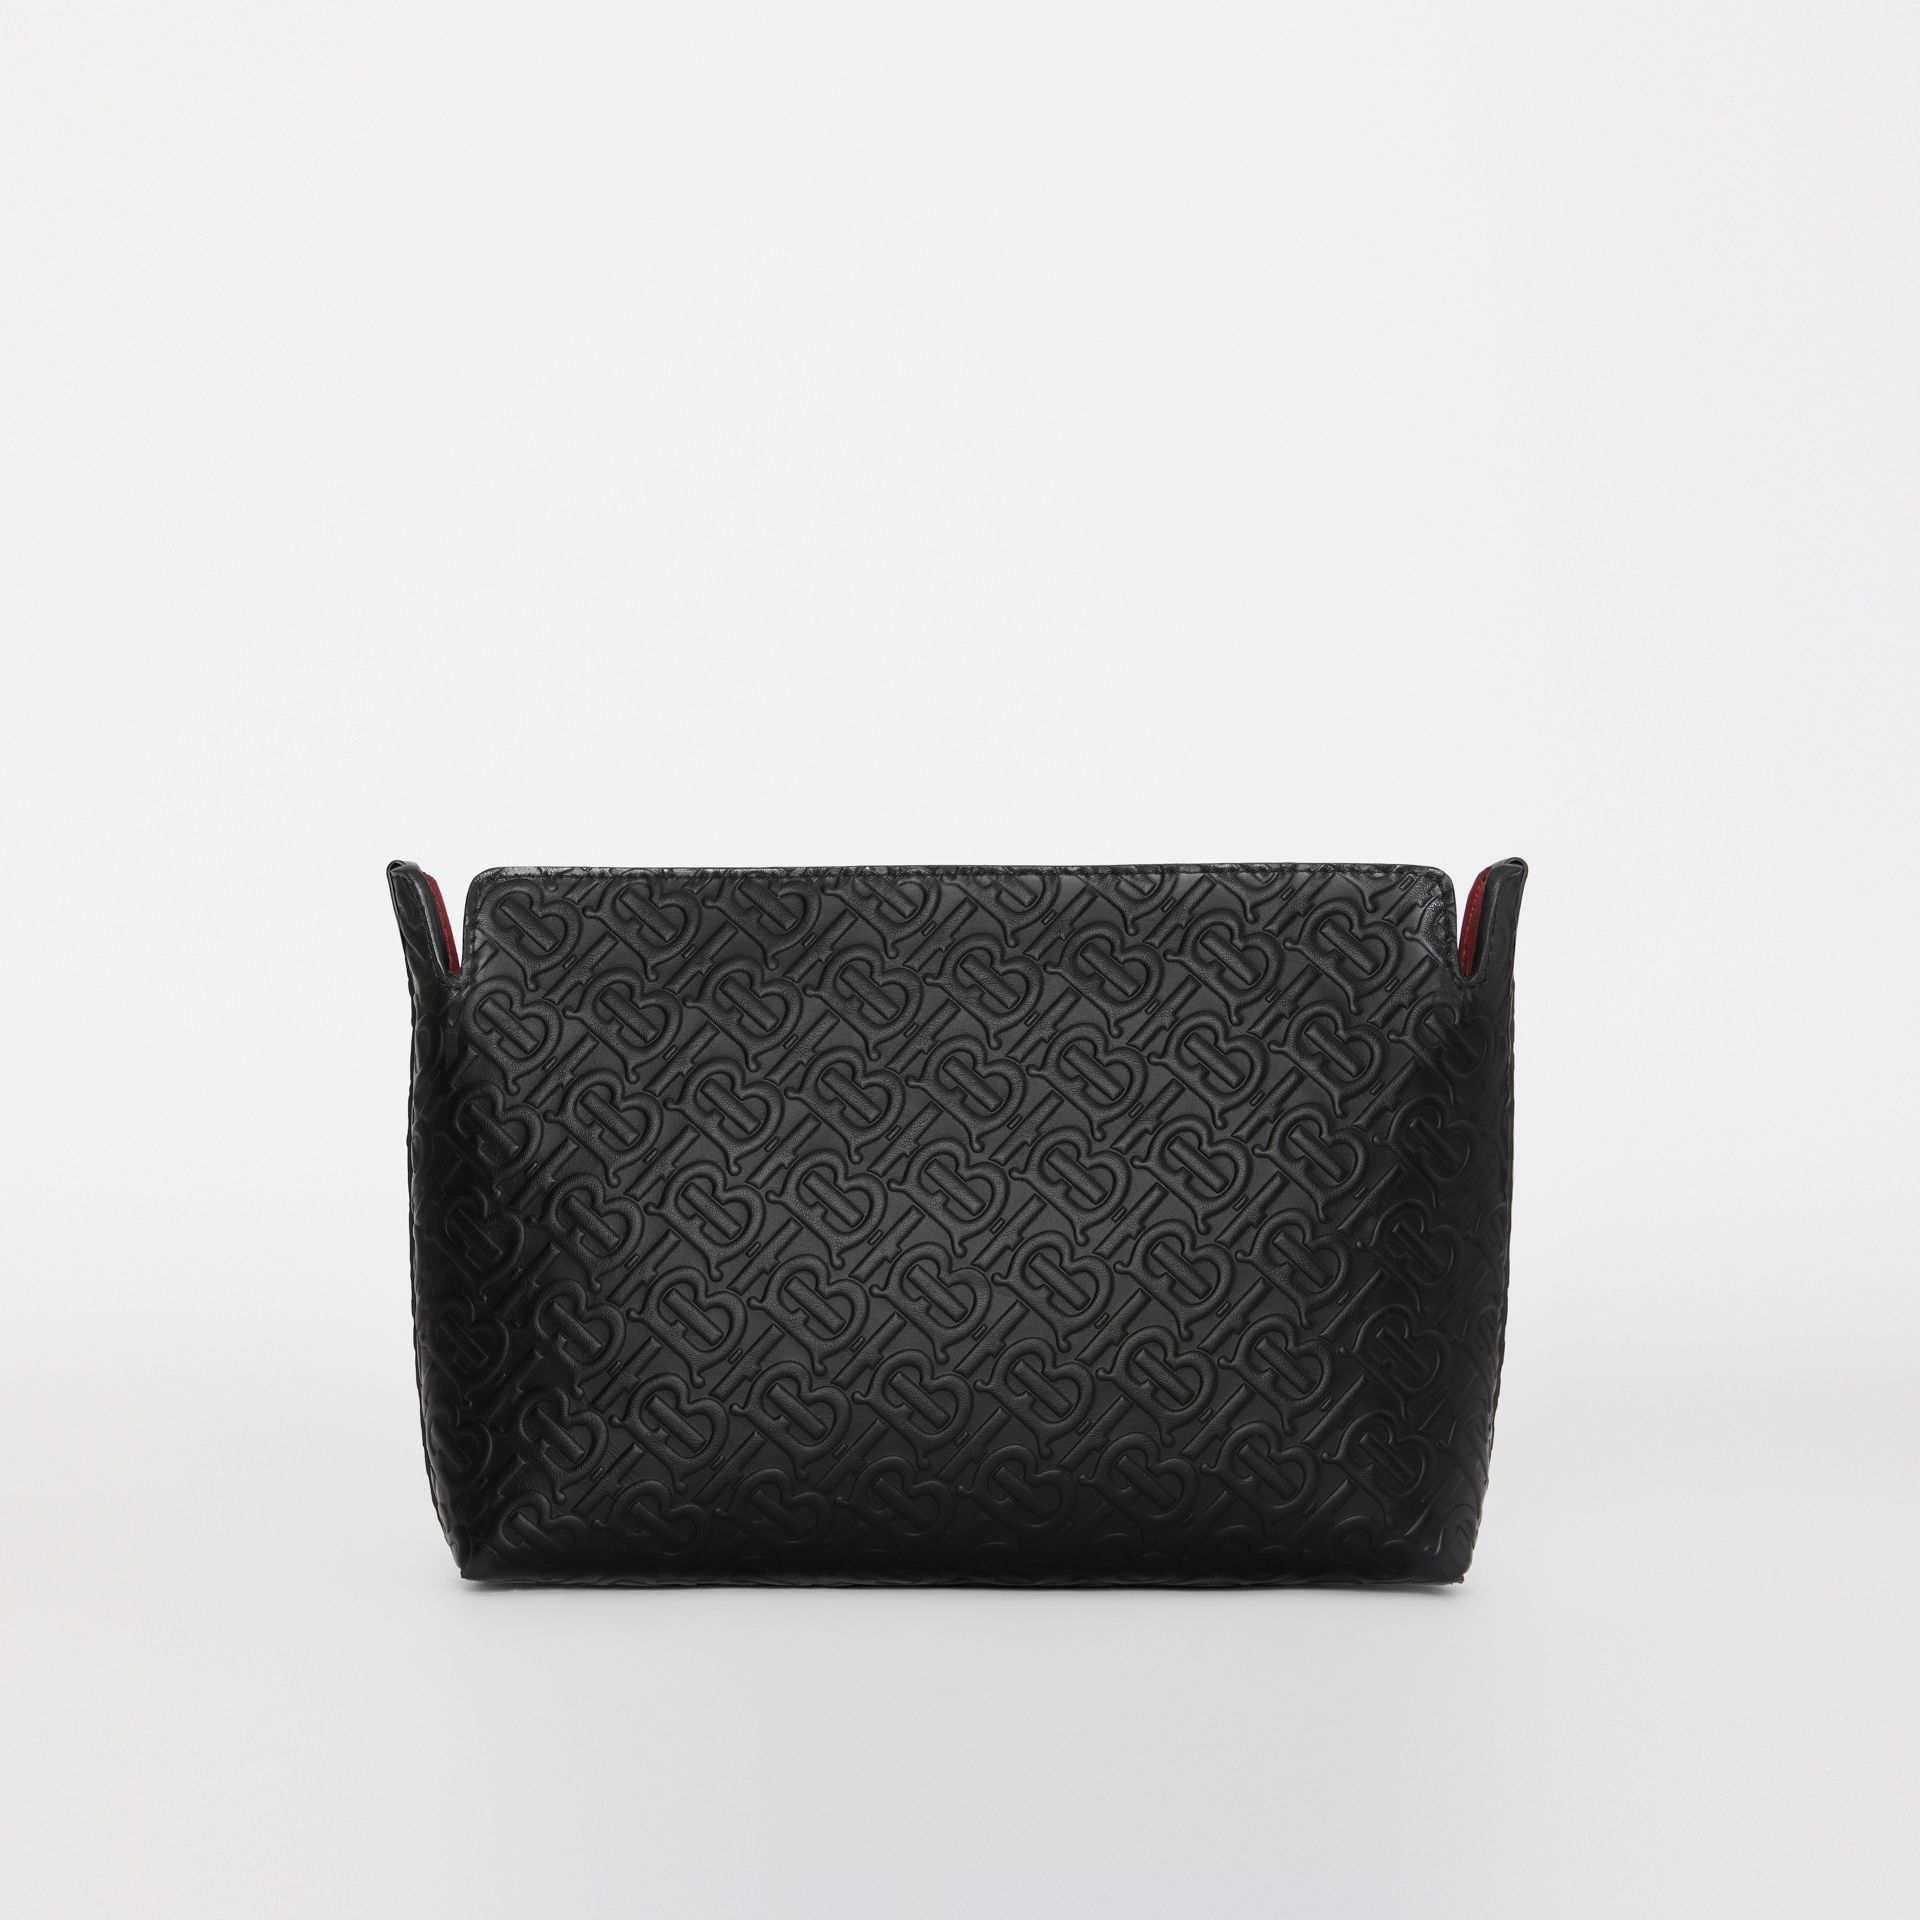 Medium Monogram Leather Clutch in Black - Women | Burberry United States - gallery image 0